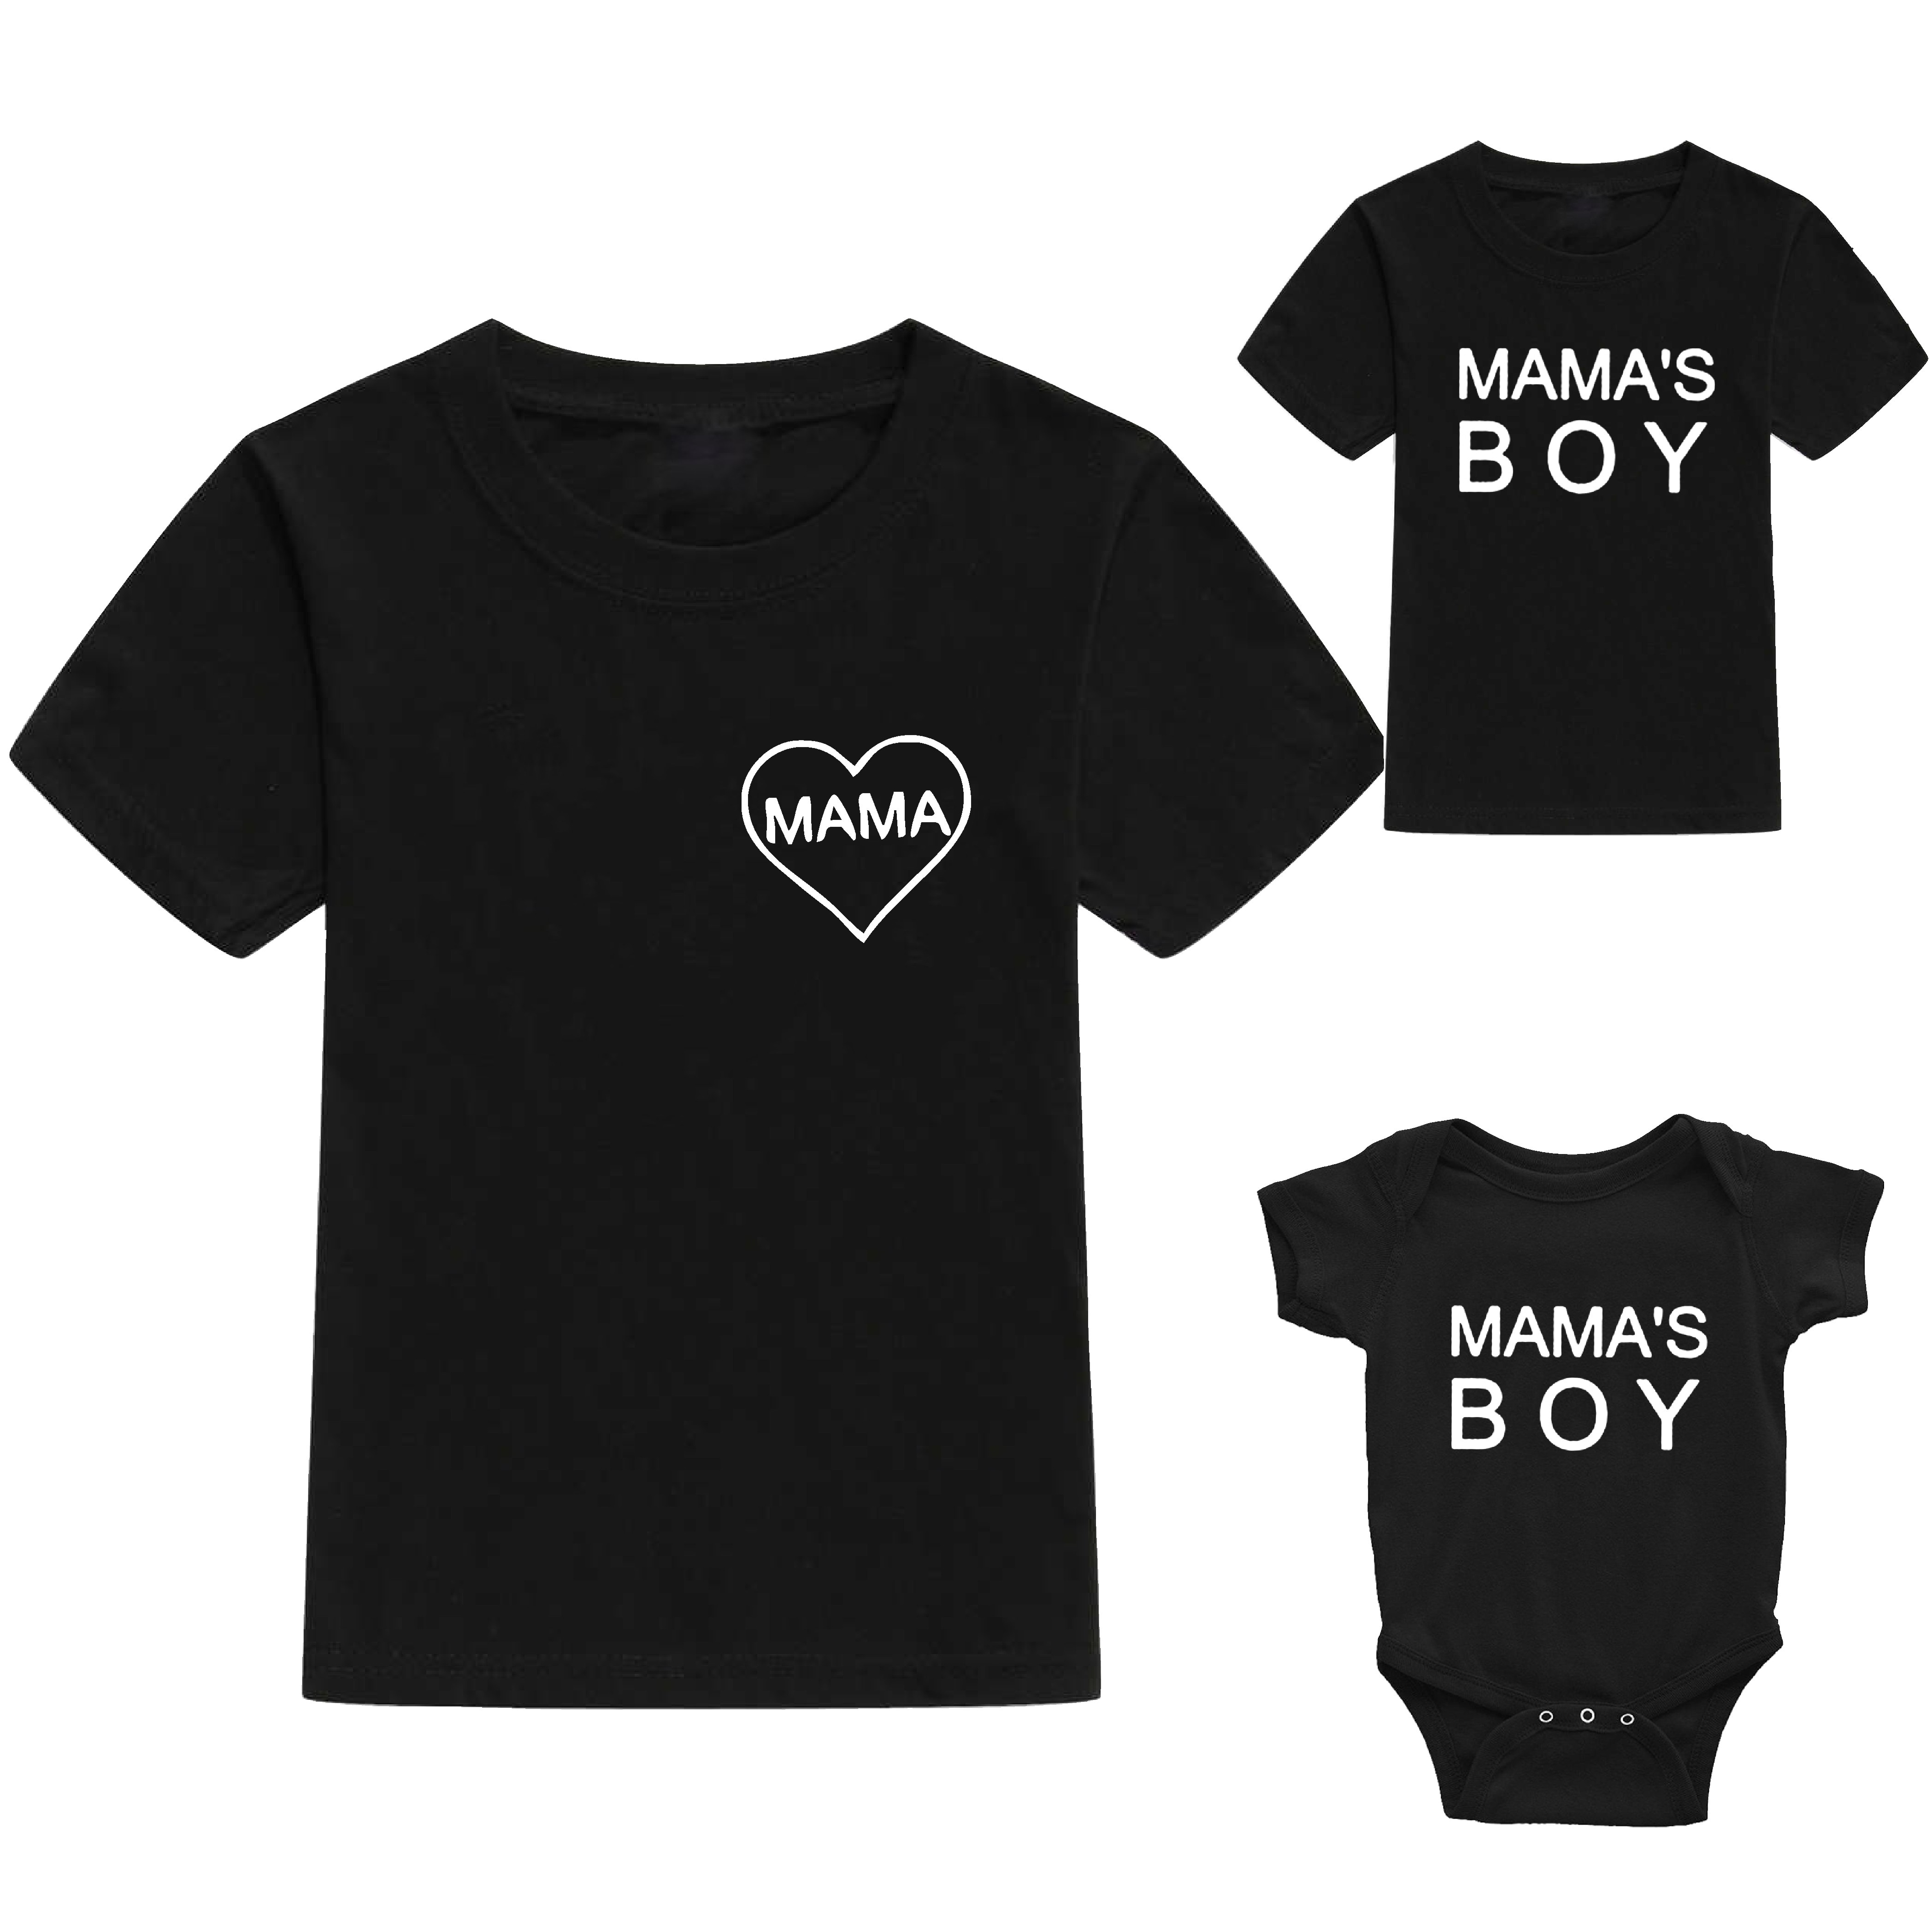 Mom and Son Matching Short Sleeve T-shirt Mommy and Me Family Clothes Baby Romper Kids T Shirts Tee